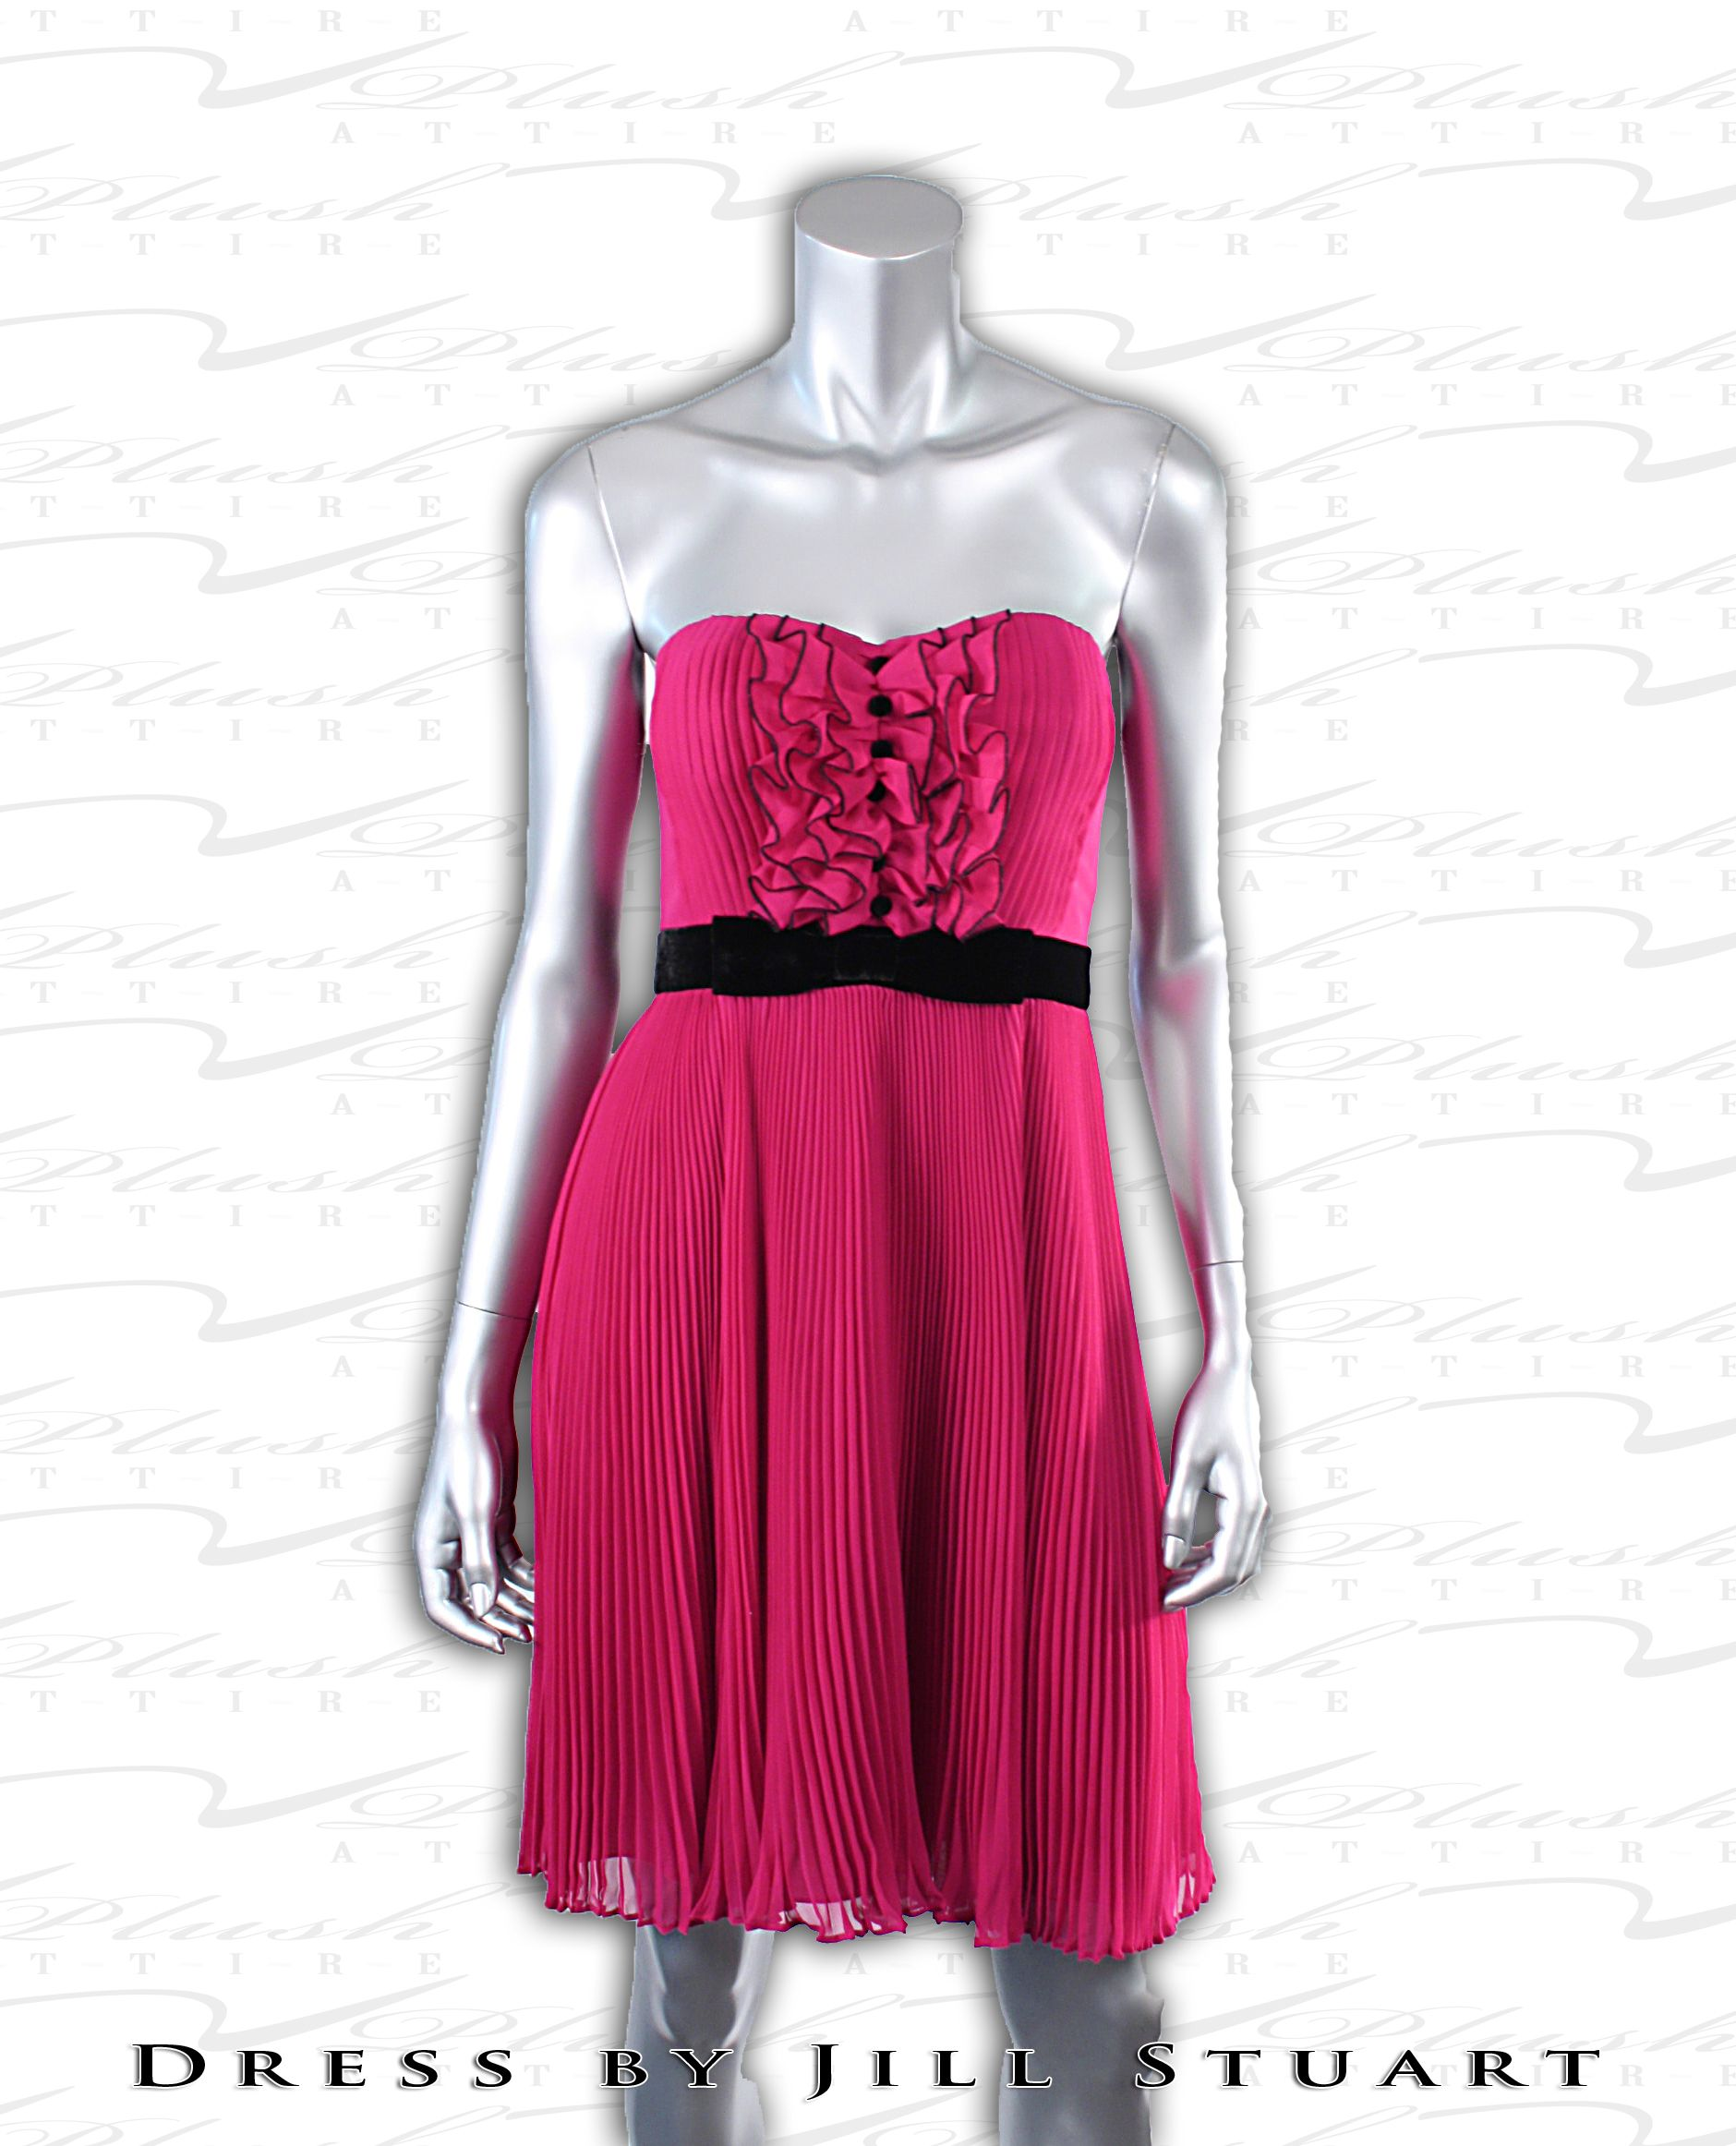 Here is your Fashion Idea for the day: Amazing Strapless dress from Jill Stuart. Perfect for Spring 2012 as it's a strong, bold color, simple yet elegant, & has a light feel to it.